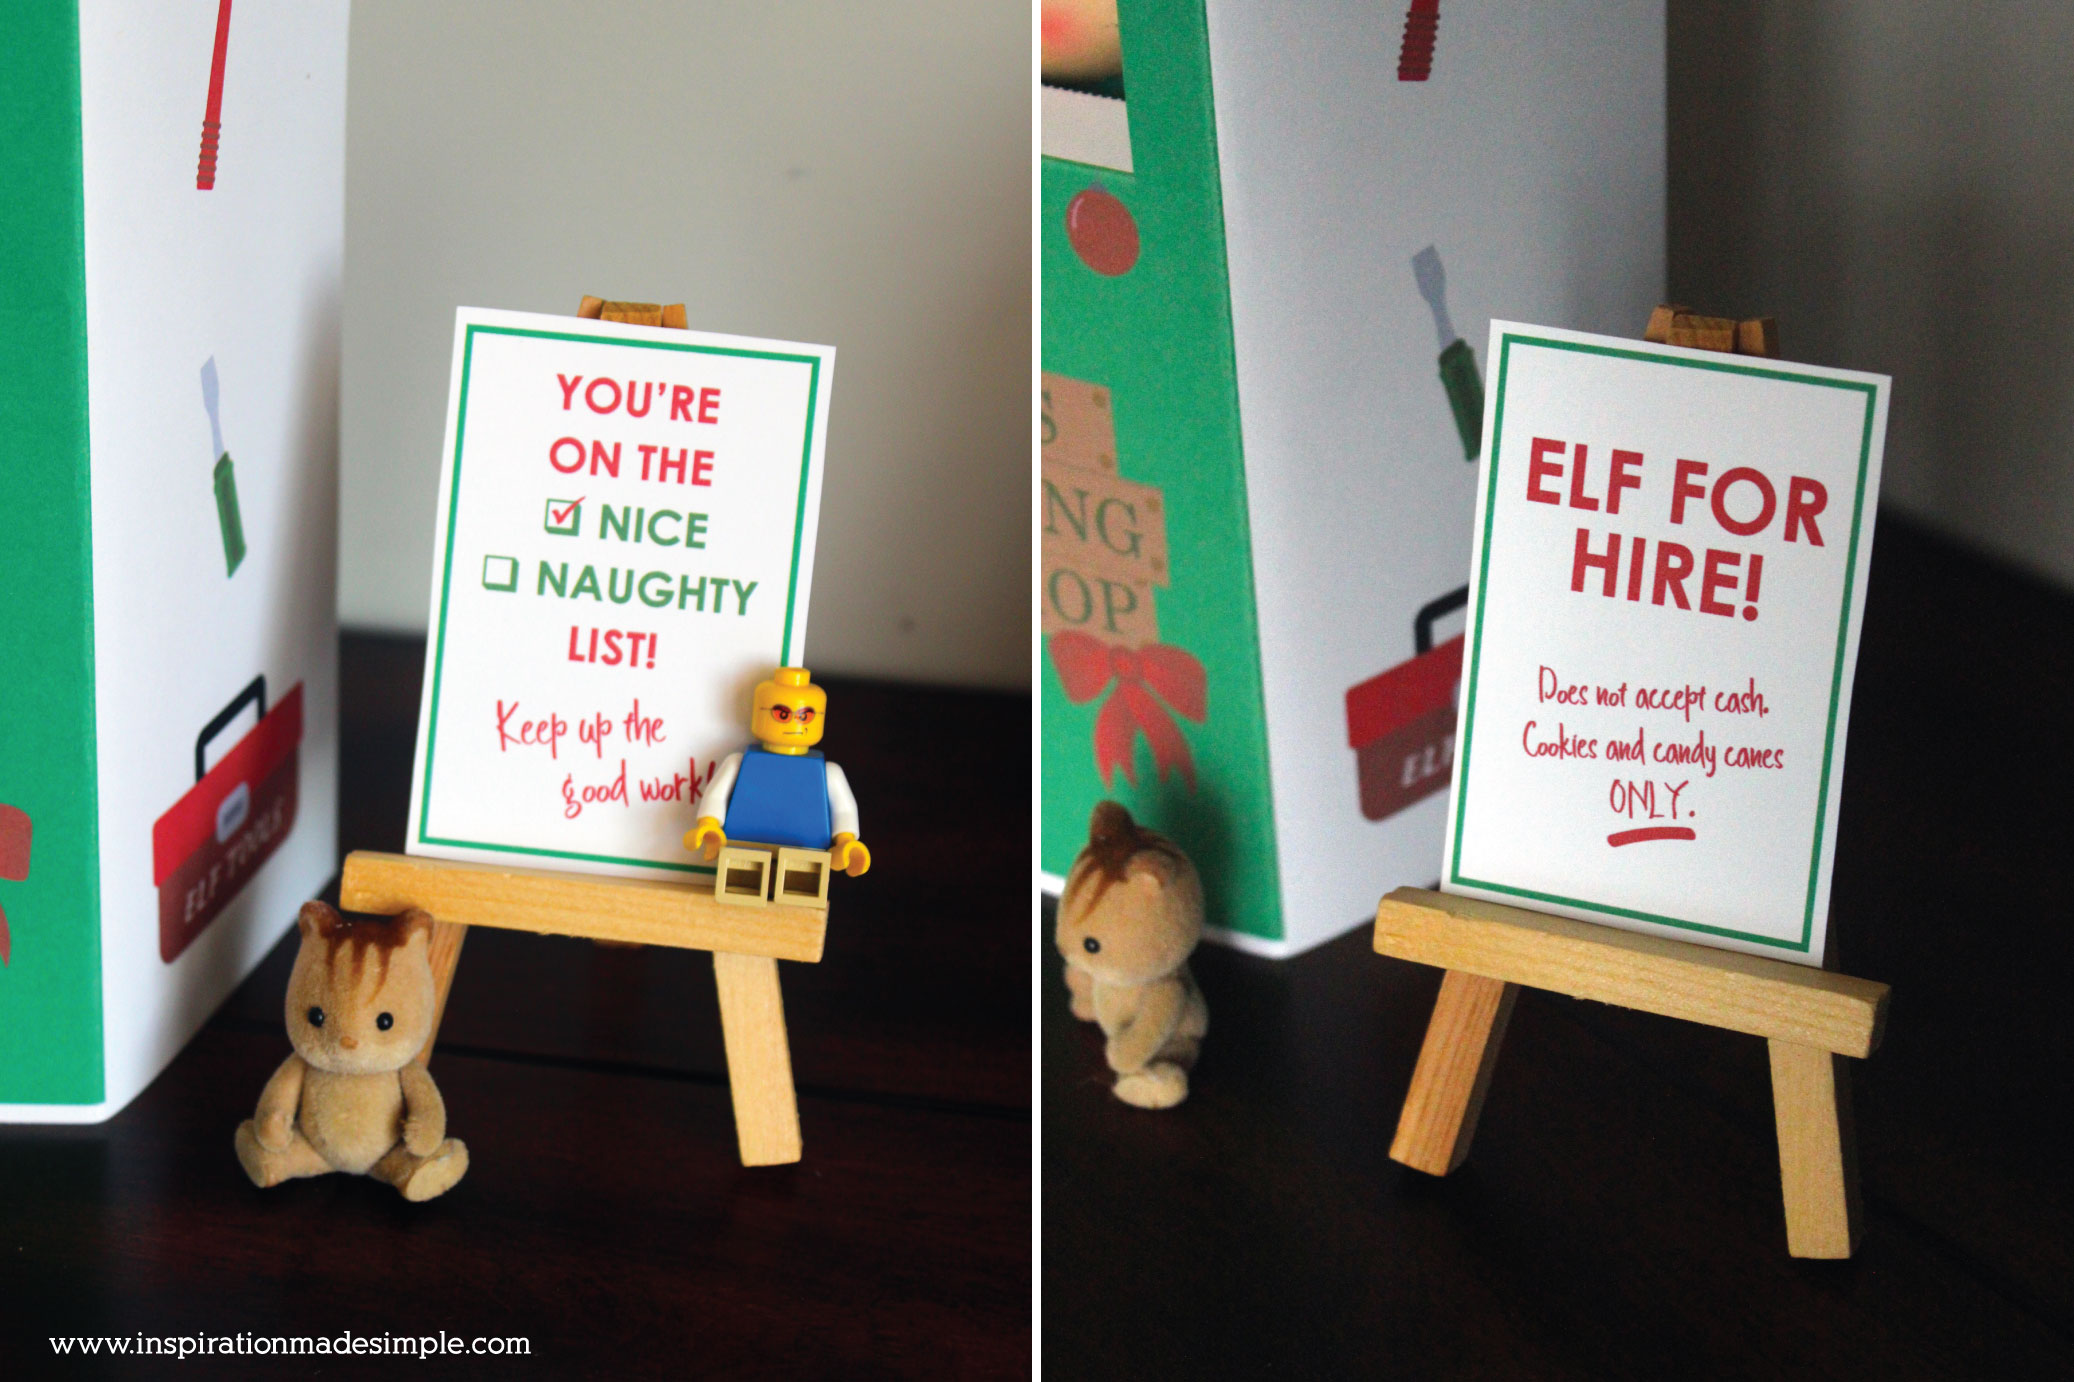 Santa's Traveling Workshop Printable Booth with 4 fun signs for Elf on the Shelf